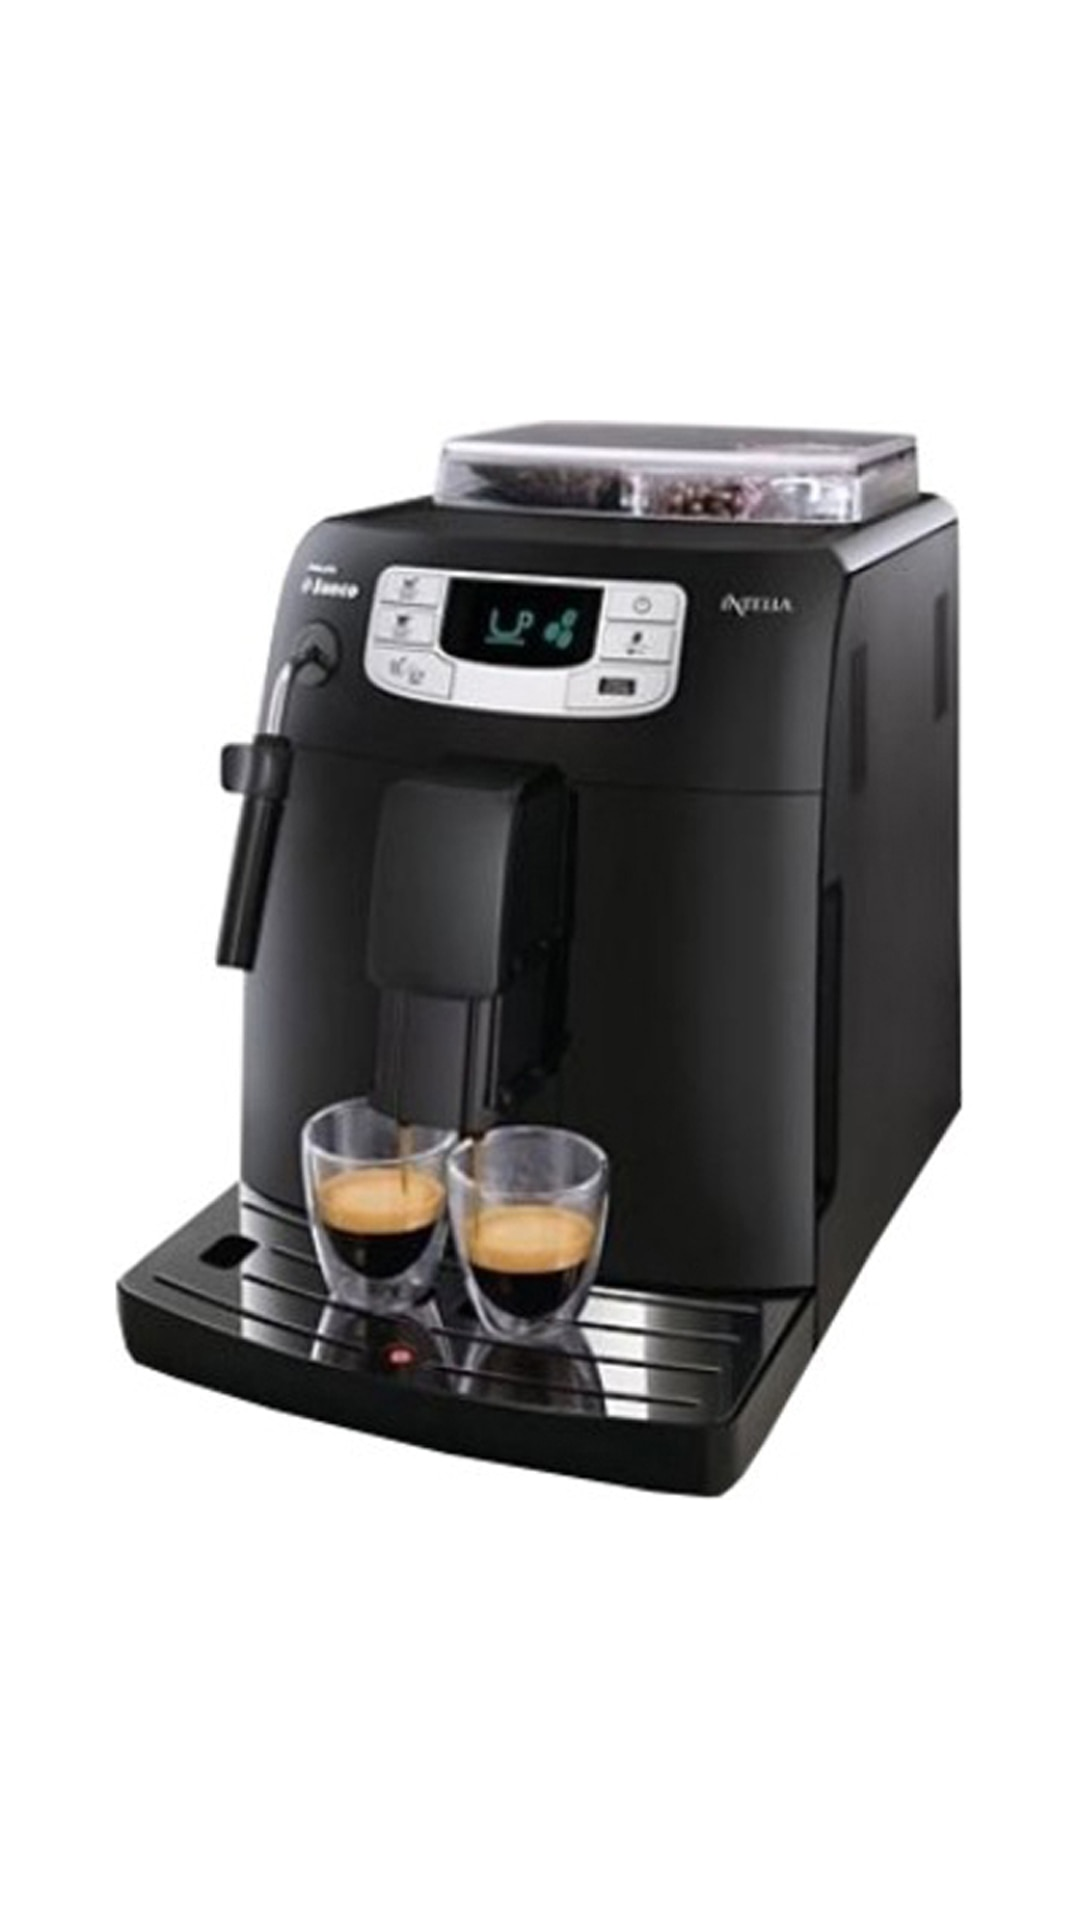 Philips Coffee Maker 10 Cups : Online Mobile Recharge - Postpaid, DTH & Datacard Bill Payments at Paytm.com